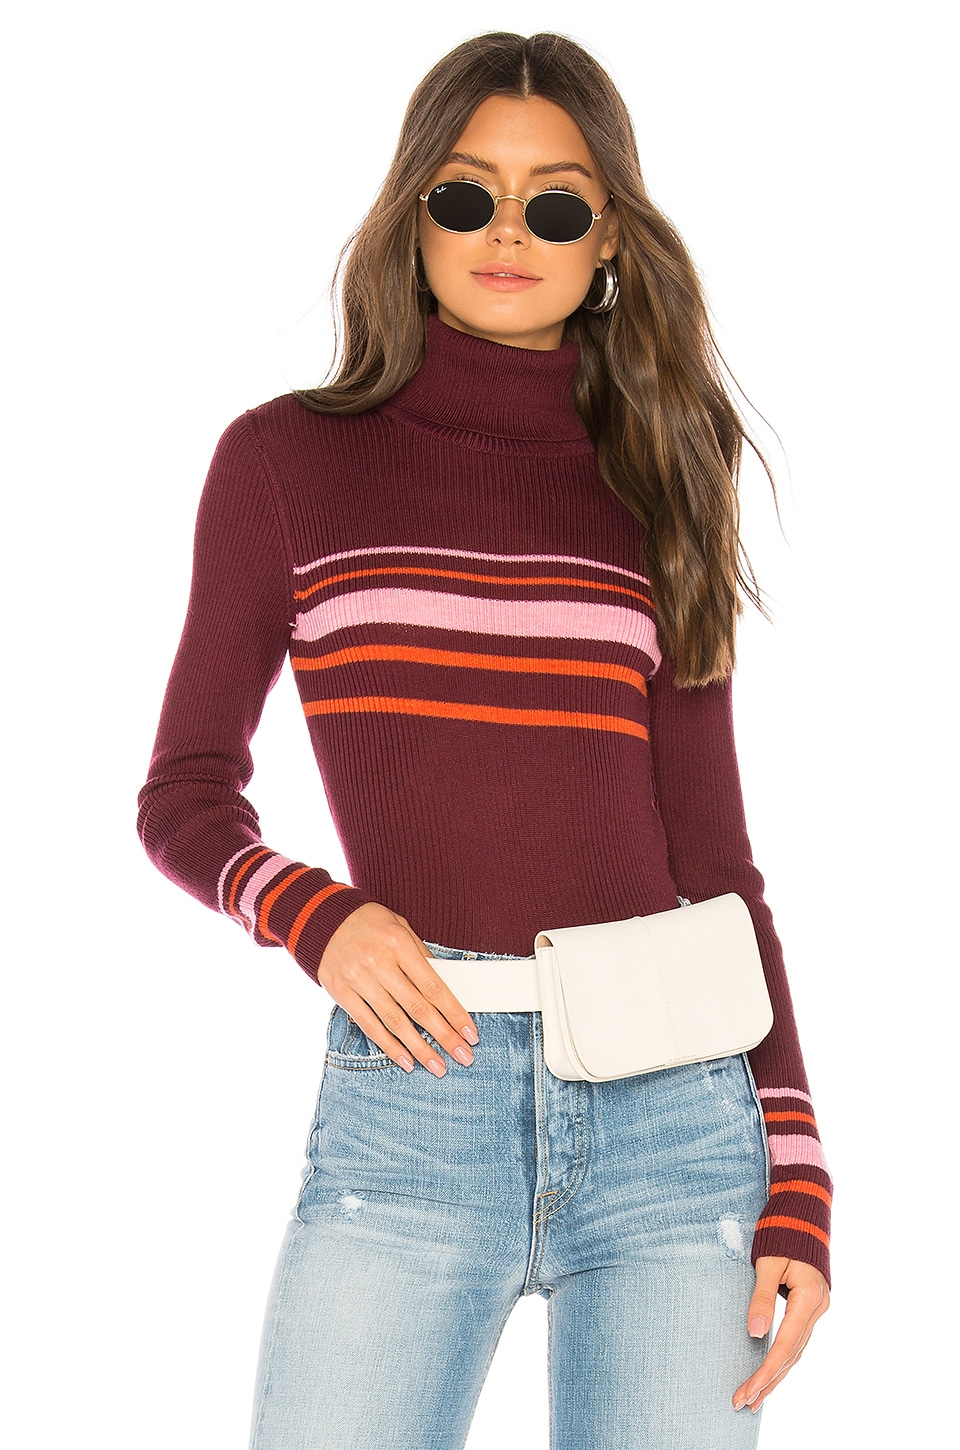 Aspen Turtleneck Sweater